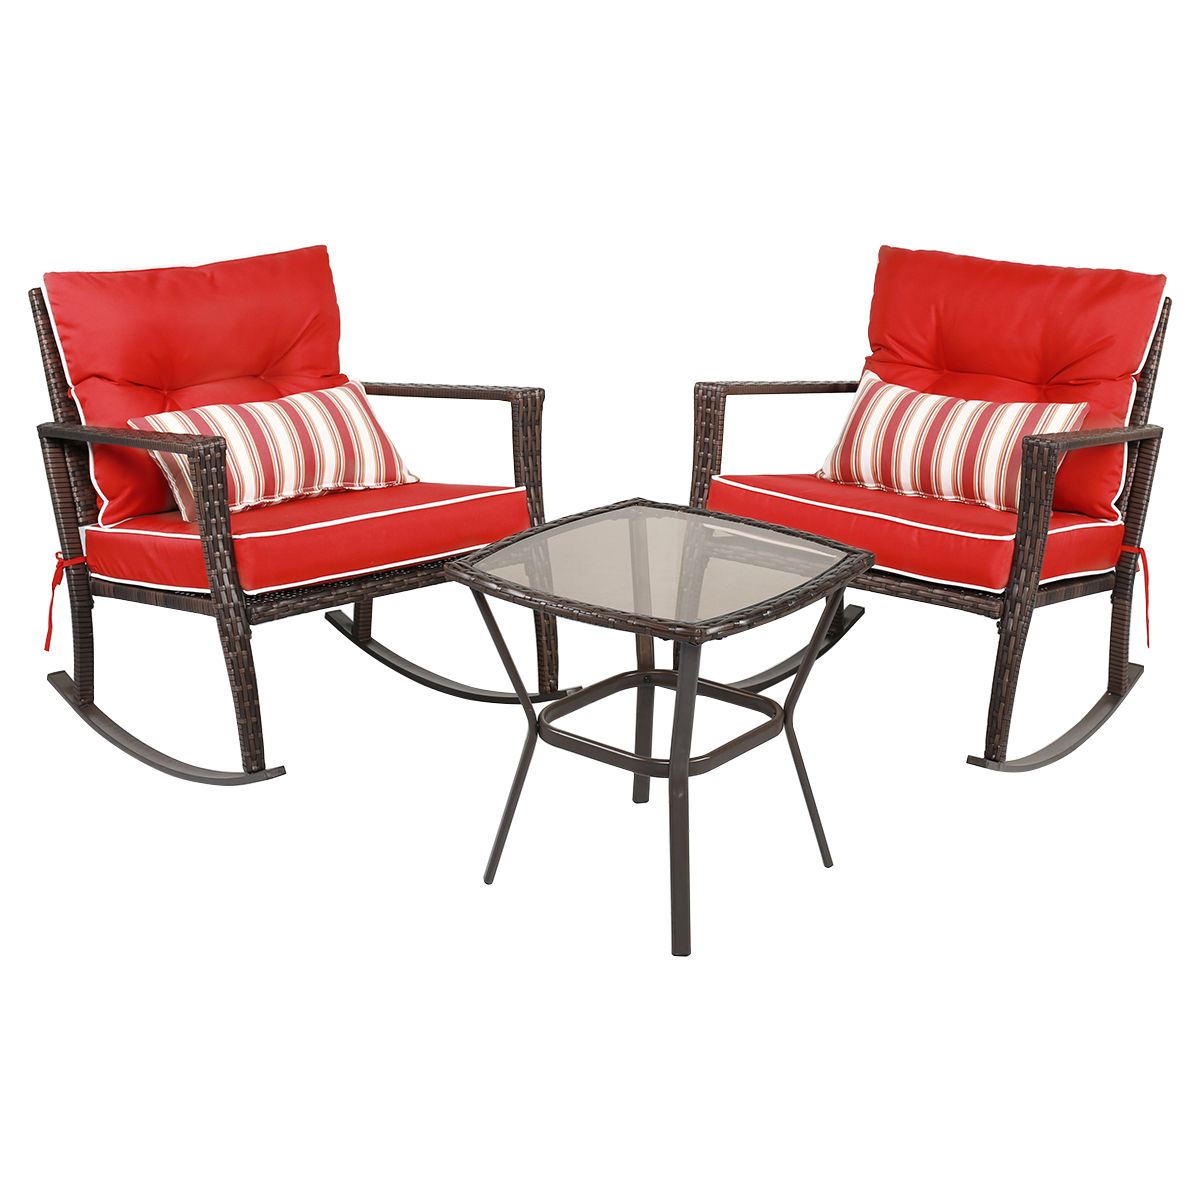 GHP Outdoor 3 Pcs Durable And Sturdy Rattan Rocking Chair Furniture Set W  Red Cushion